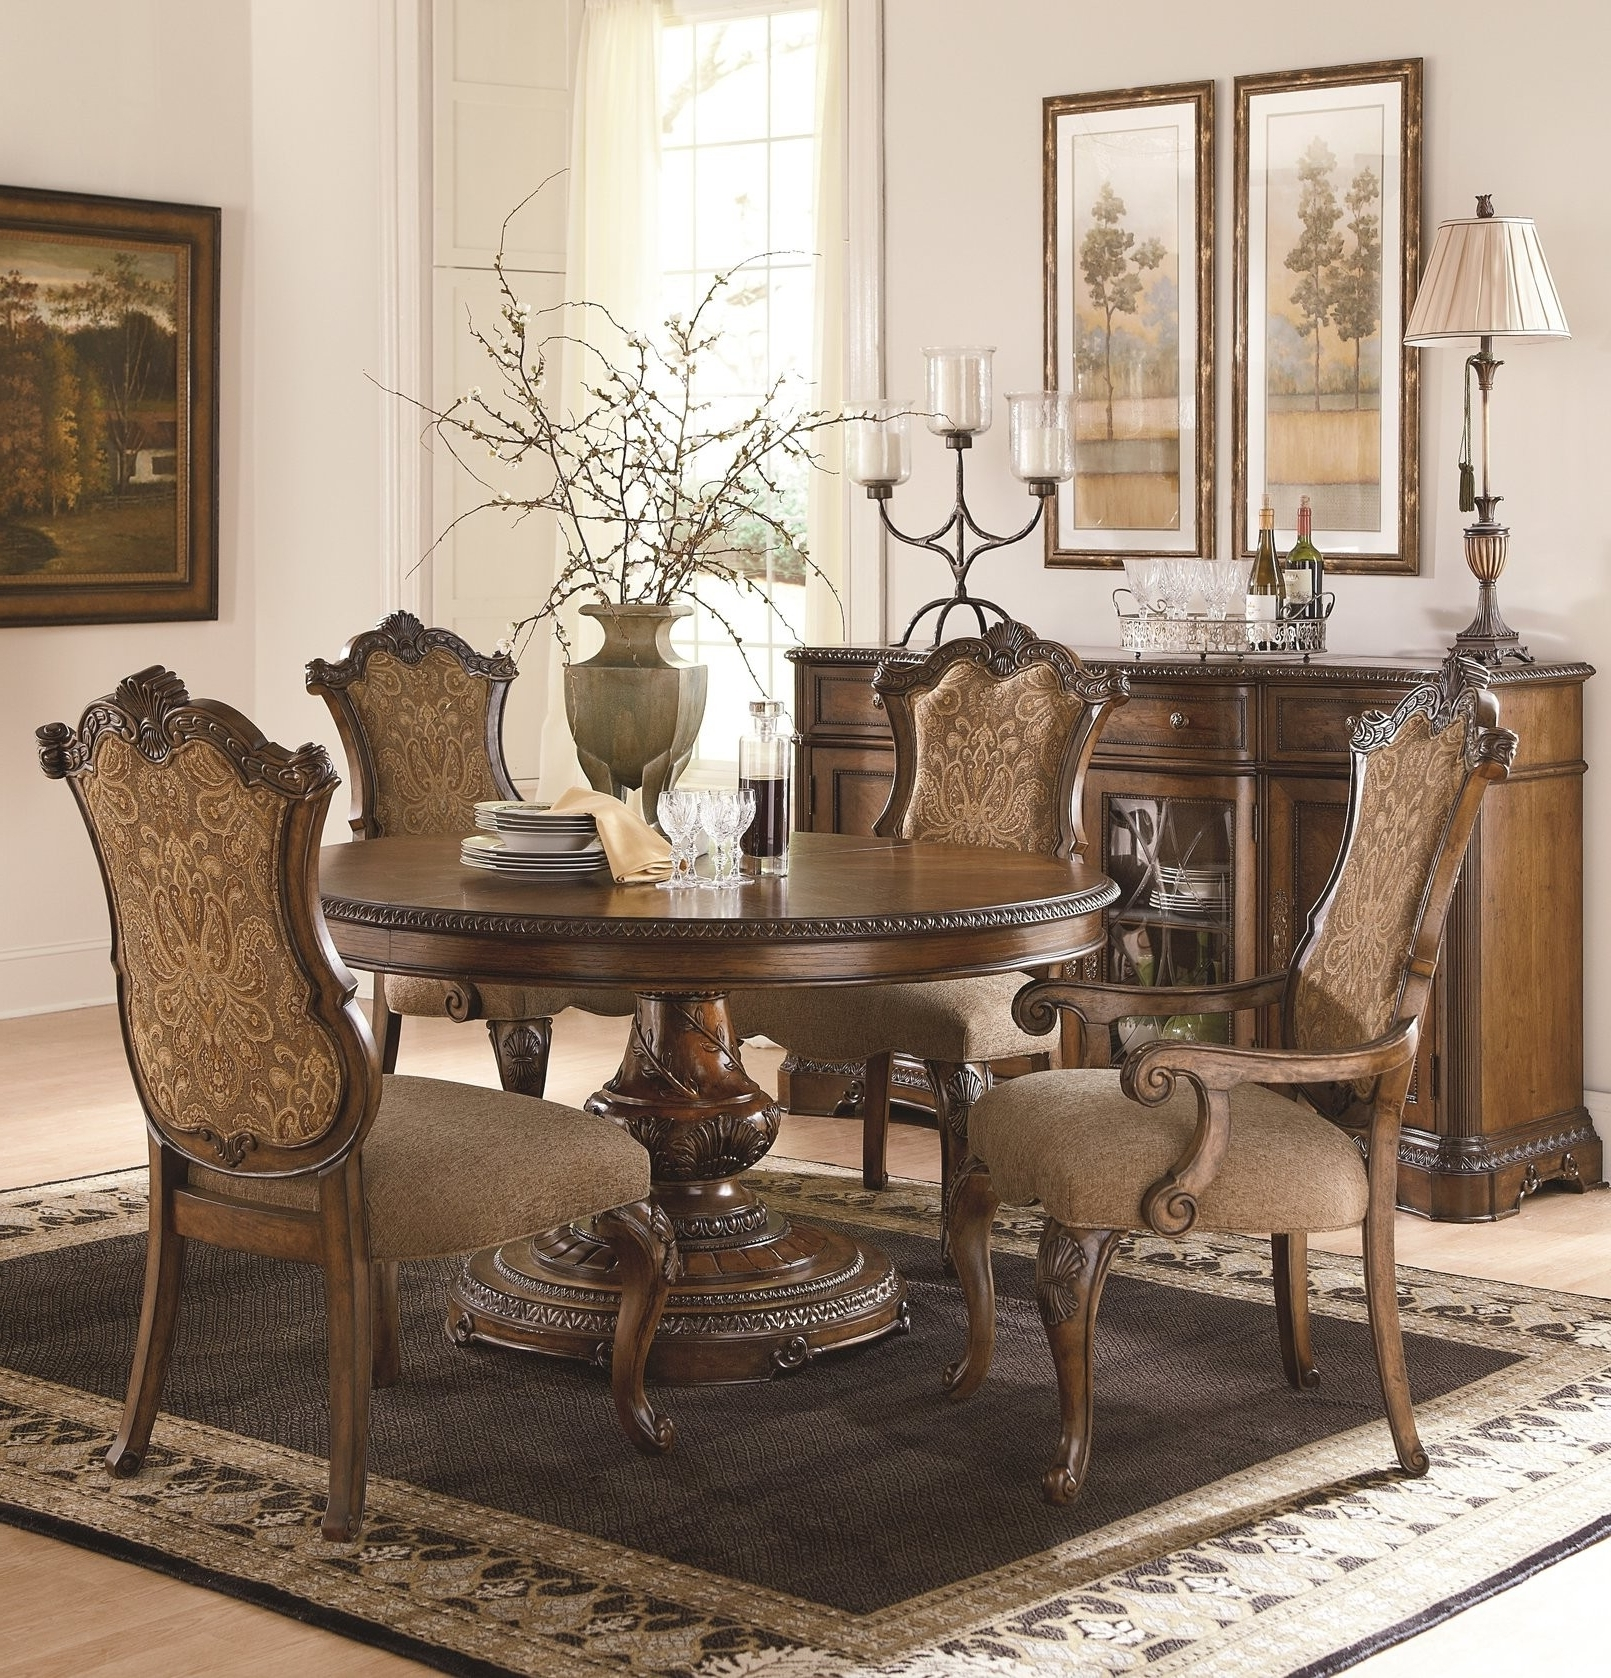 Dining Table Upholstered Chairs Unique The Pemberleigh Round Table inside Favorite Jaxon 7 Piece Rectangle Dining Sets With Upholstered Chairs